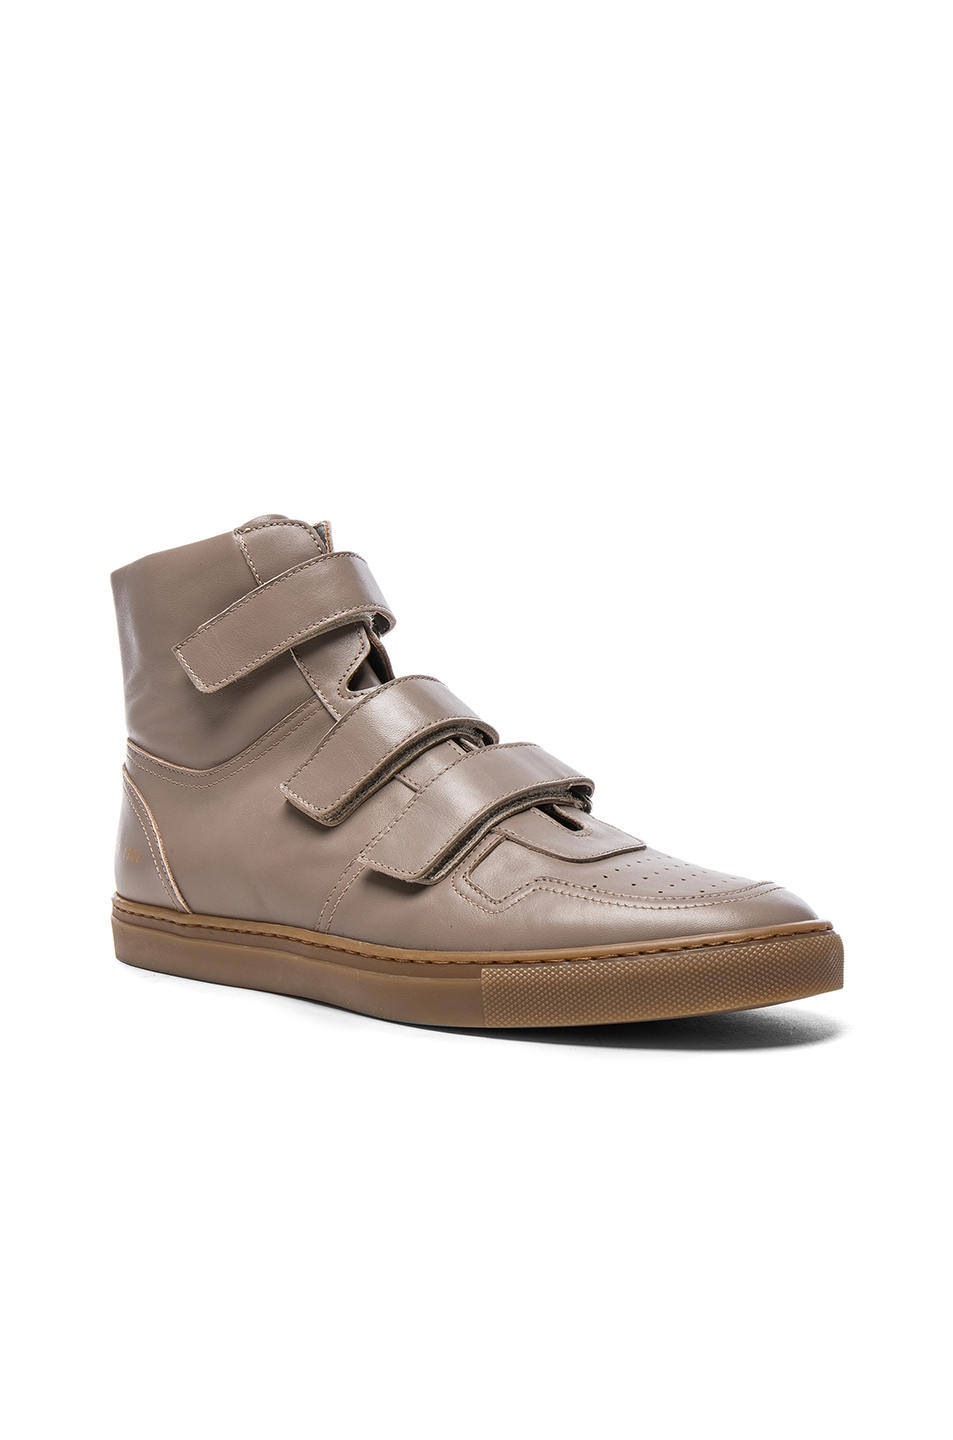 Robert Geller x Common Projects Velcro Leather High Tops in Neutrals